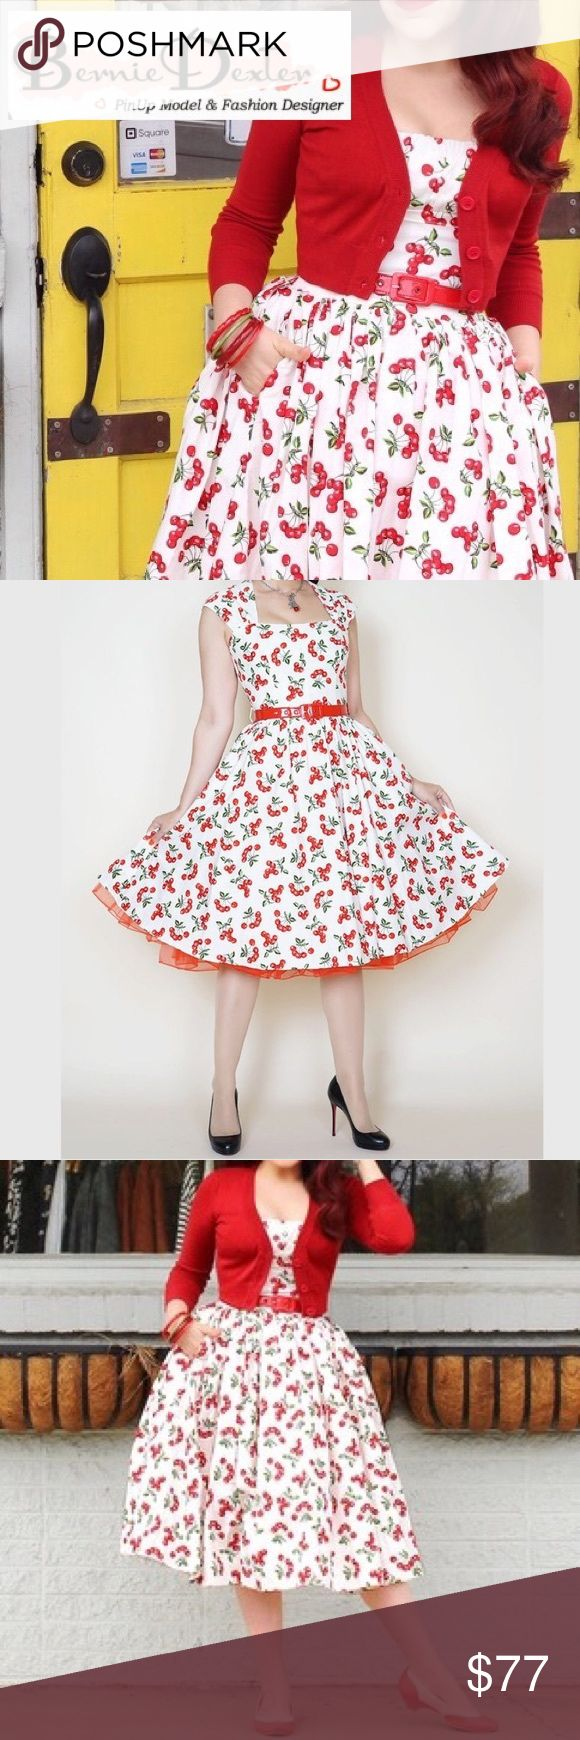 ModCloth Bernie Dexter Cherry Print Retro Dress ModCloth Bernie Dexter Cherry Print Retro Dress - Size 12. NWOT and includes the red belt (not the red tulle). Adorable rockabilly Holiday party dress! Bust: 20 inches Waist: 17 inches Total length: 40 inches ModCloth Dresses